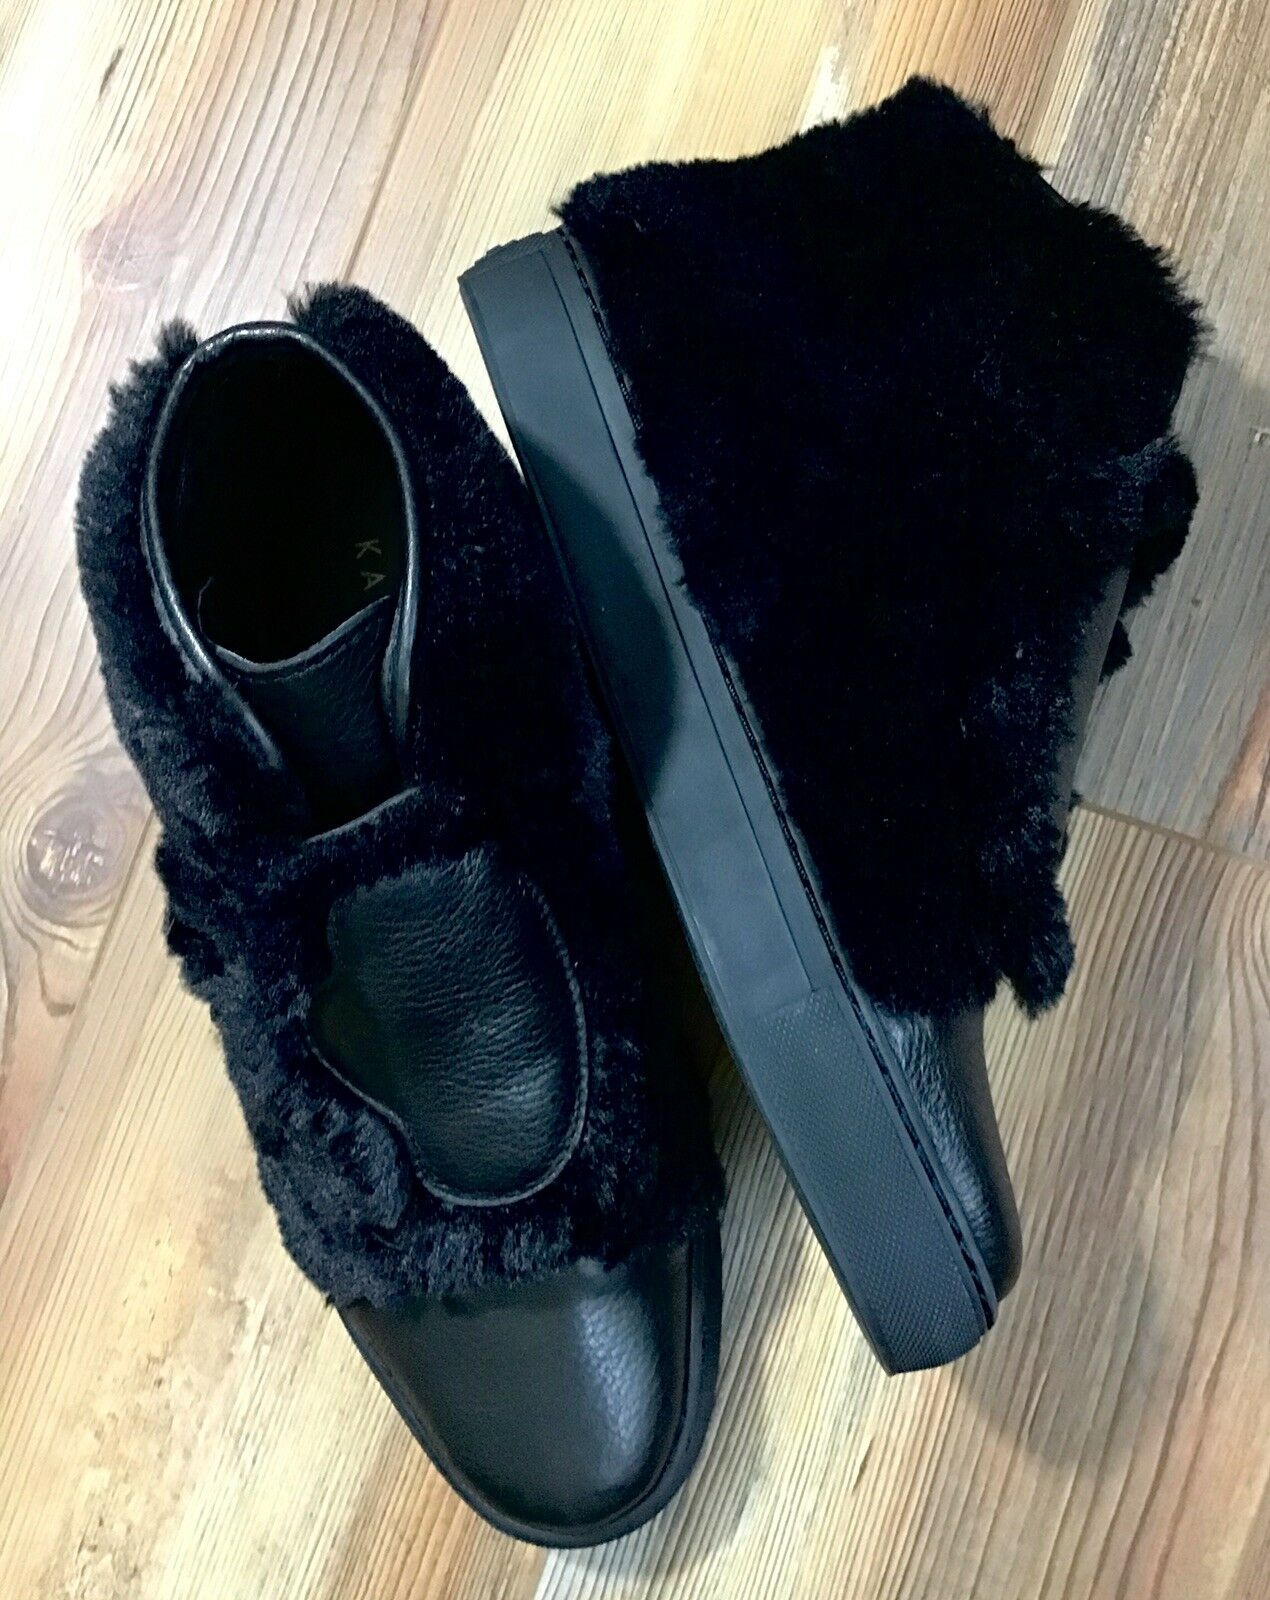 New New New Katy Perry shoes Booties The Honey Claw Black Faux Fur SIze 6 65689f